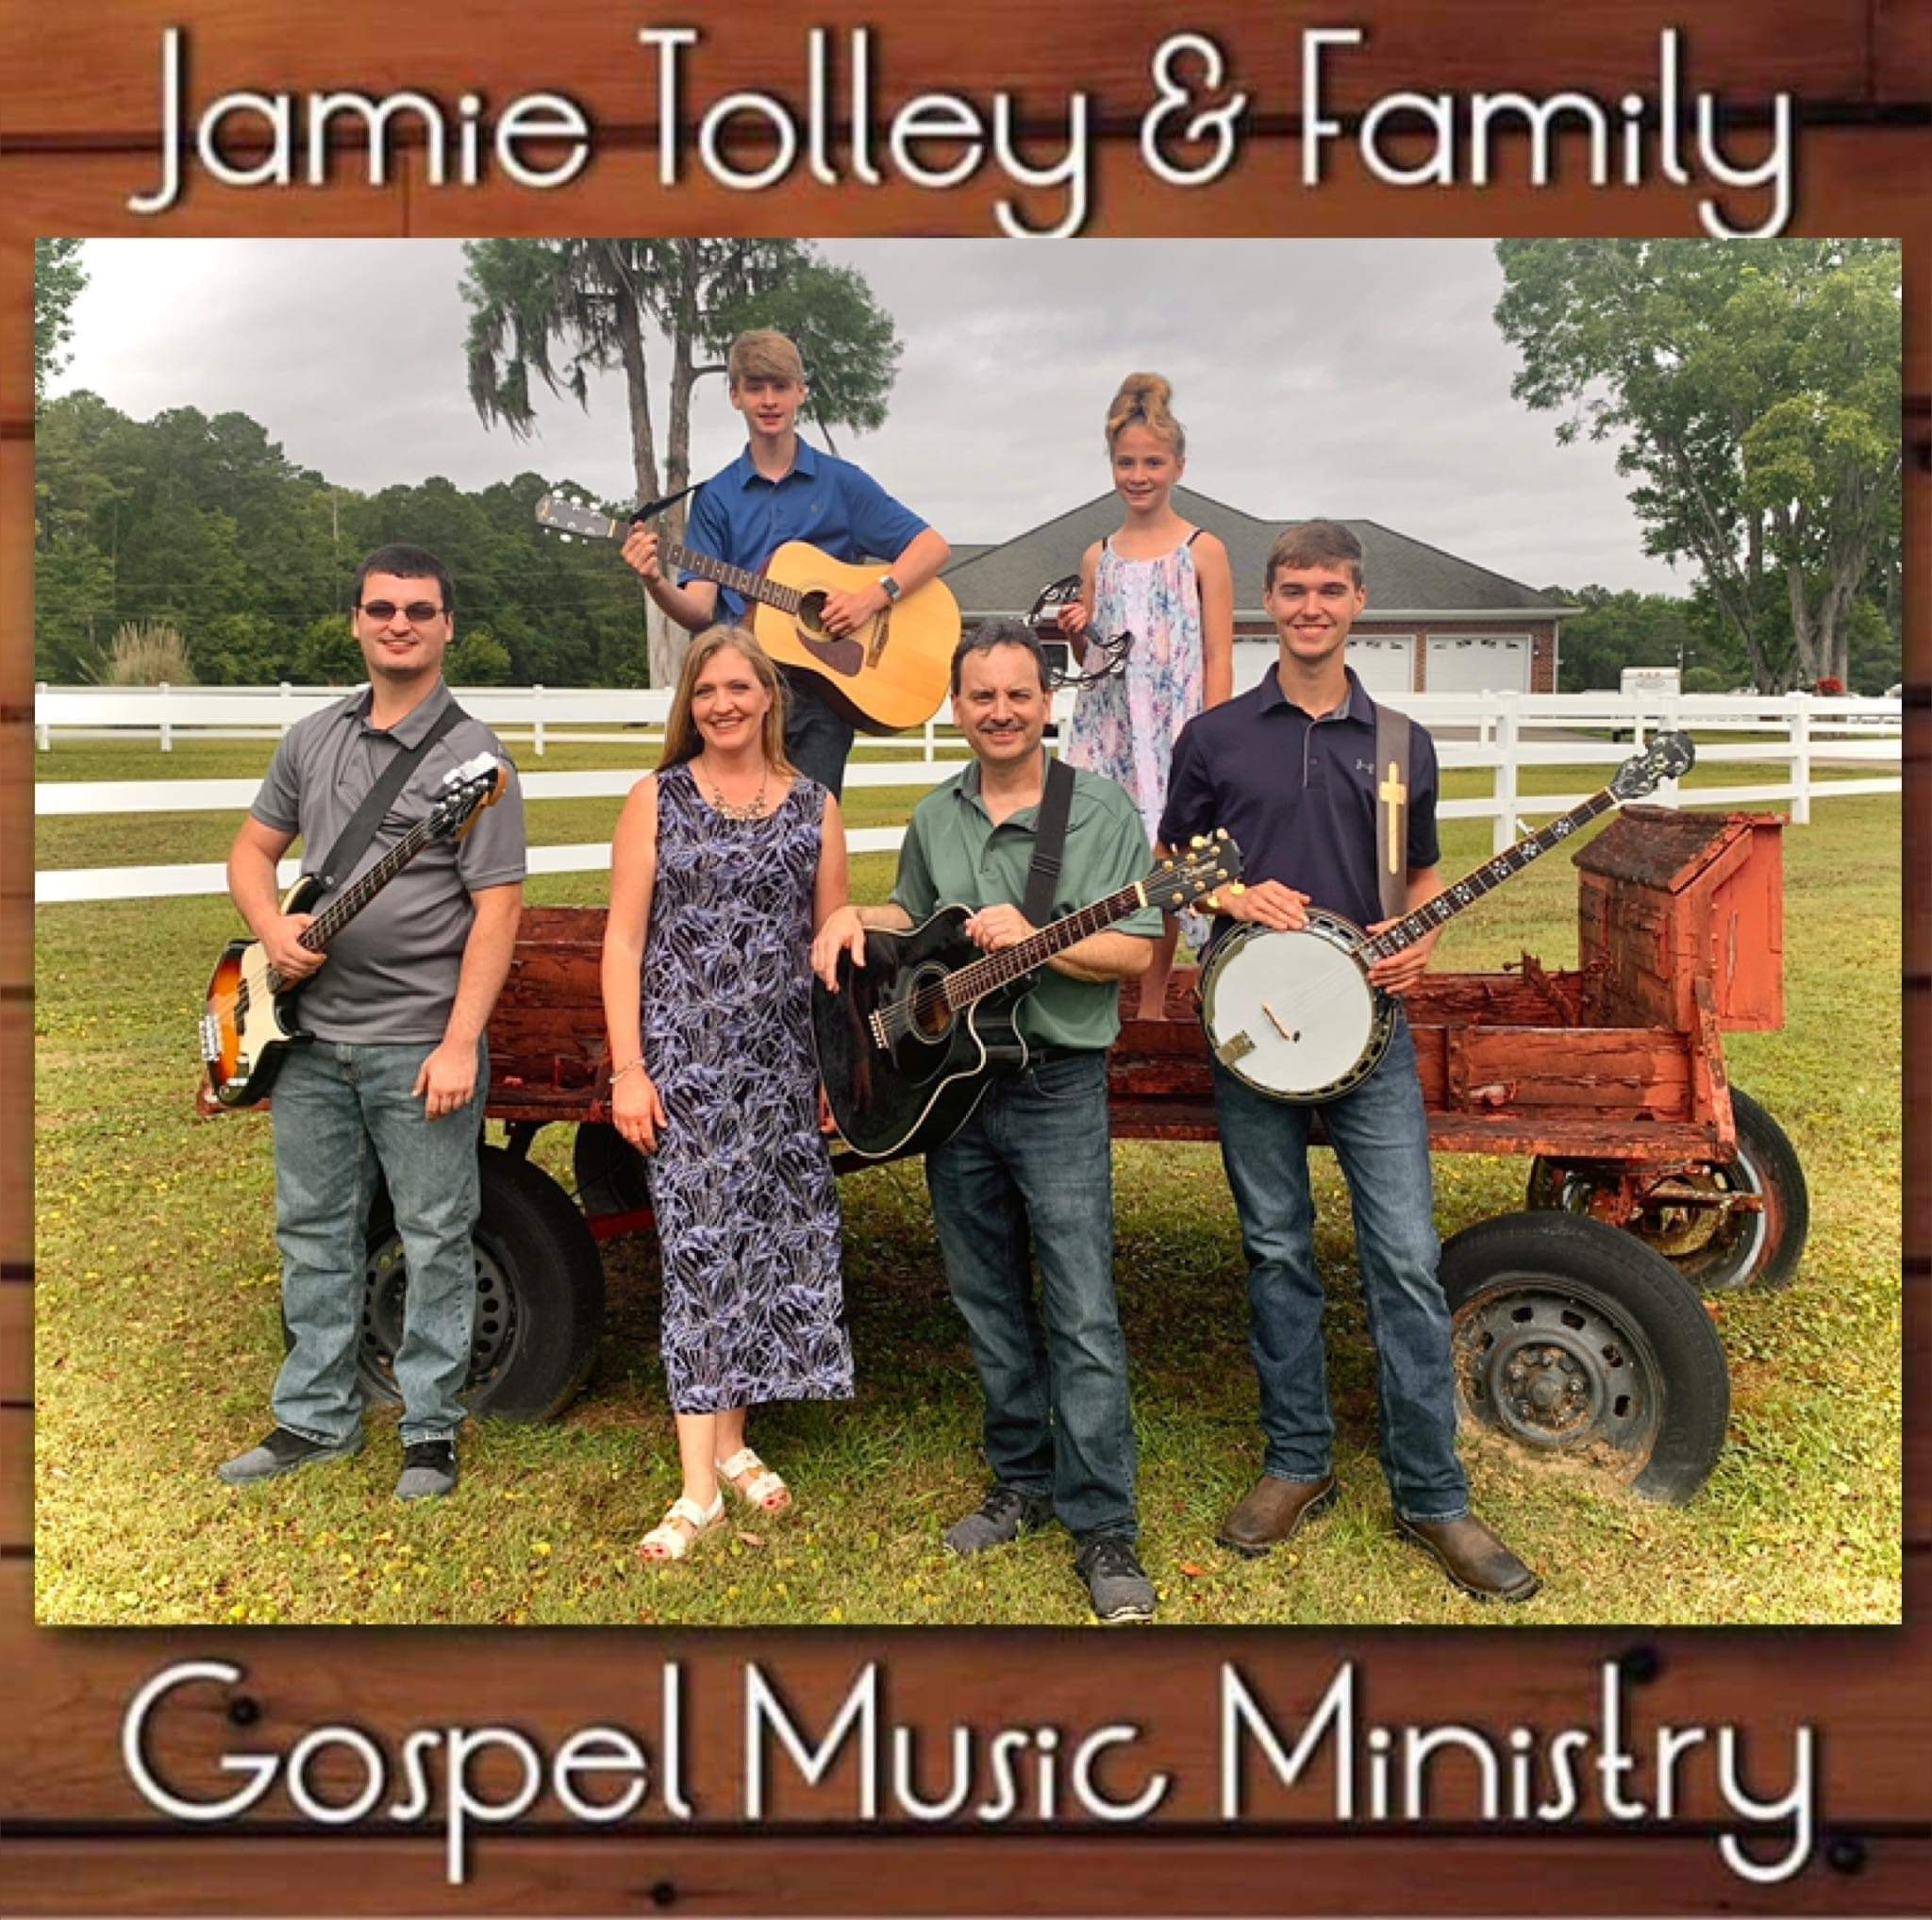 Jamie Tolley & Family